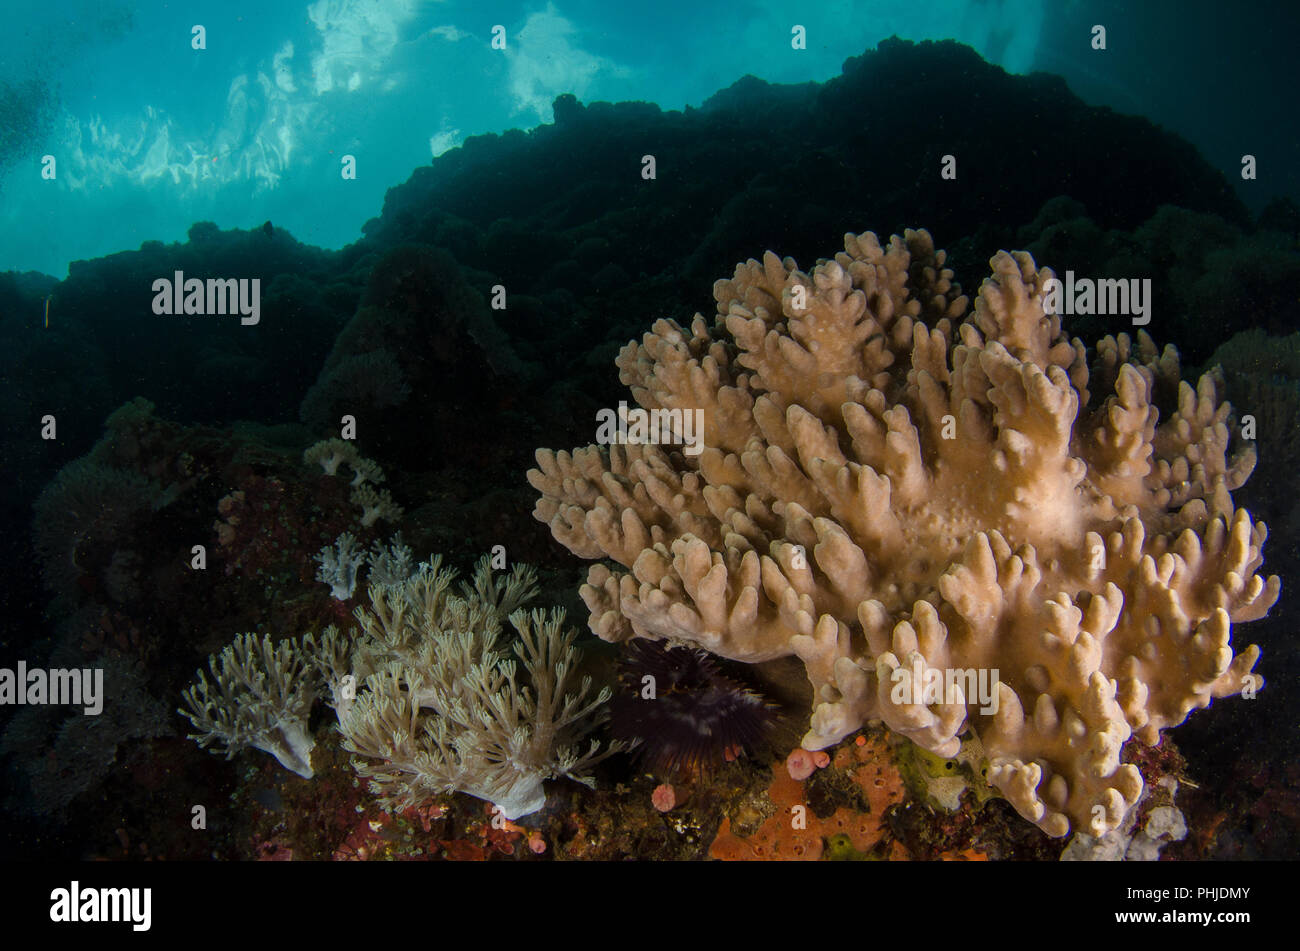 Soft Coral. Sinularia sp., Alcyoniidae, Anilao, Batangas, Philippines, Philippine Sea, Pacific Ocean, Asia - Stock Image